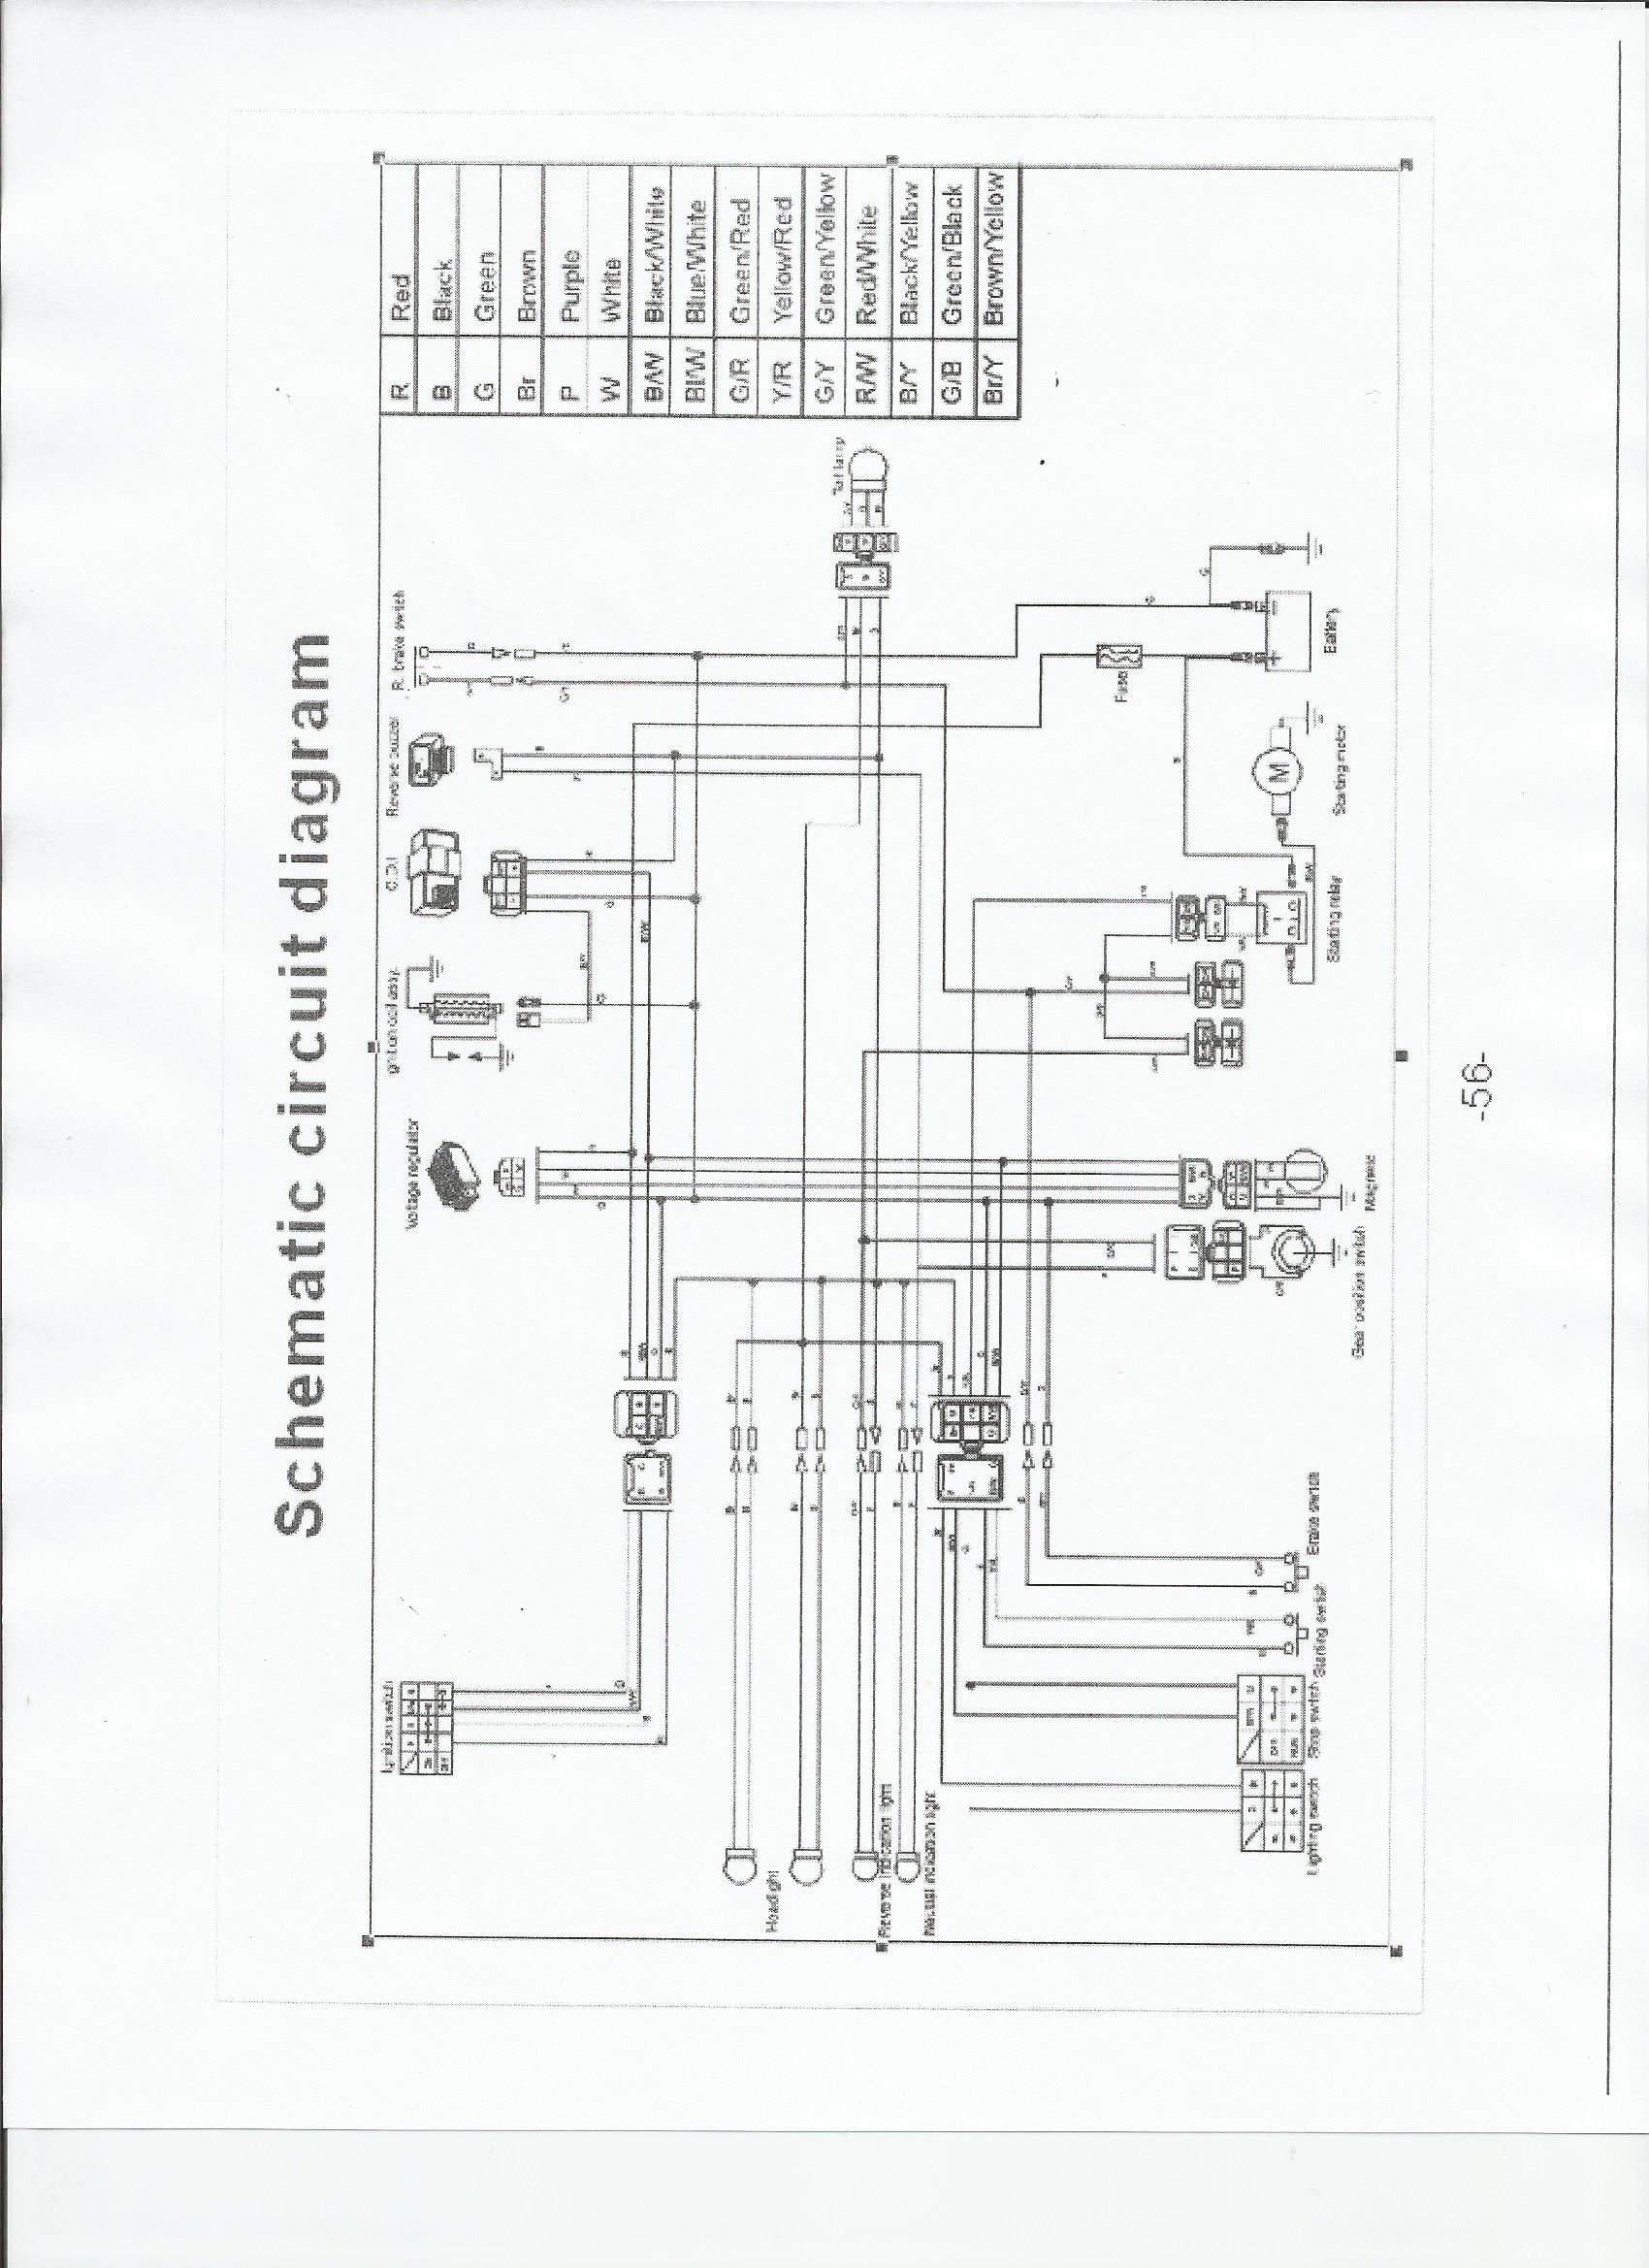 tao tao wiring schematic chinese quad wiring diagram chinese atv ignition schematic \u2022 free 150Cc Scooter Wiring Diagram at virtualis.co